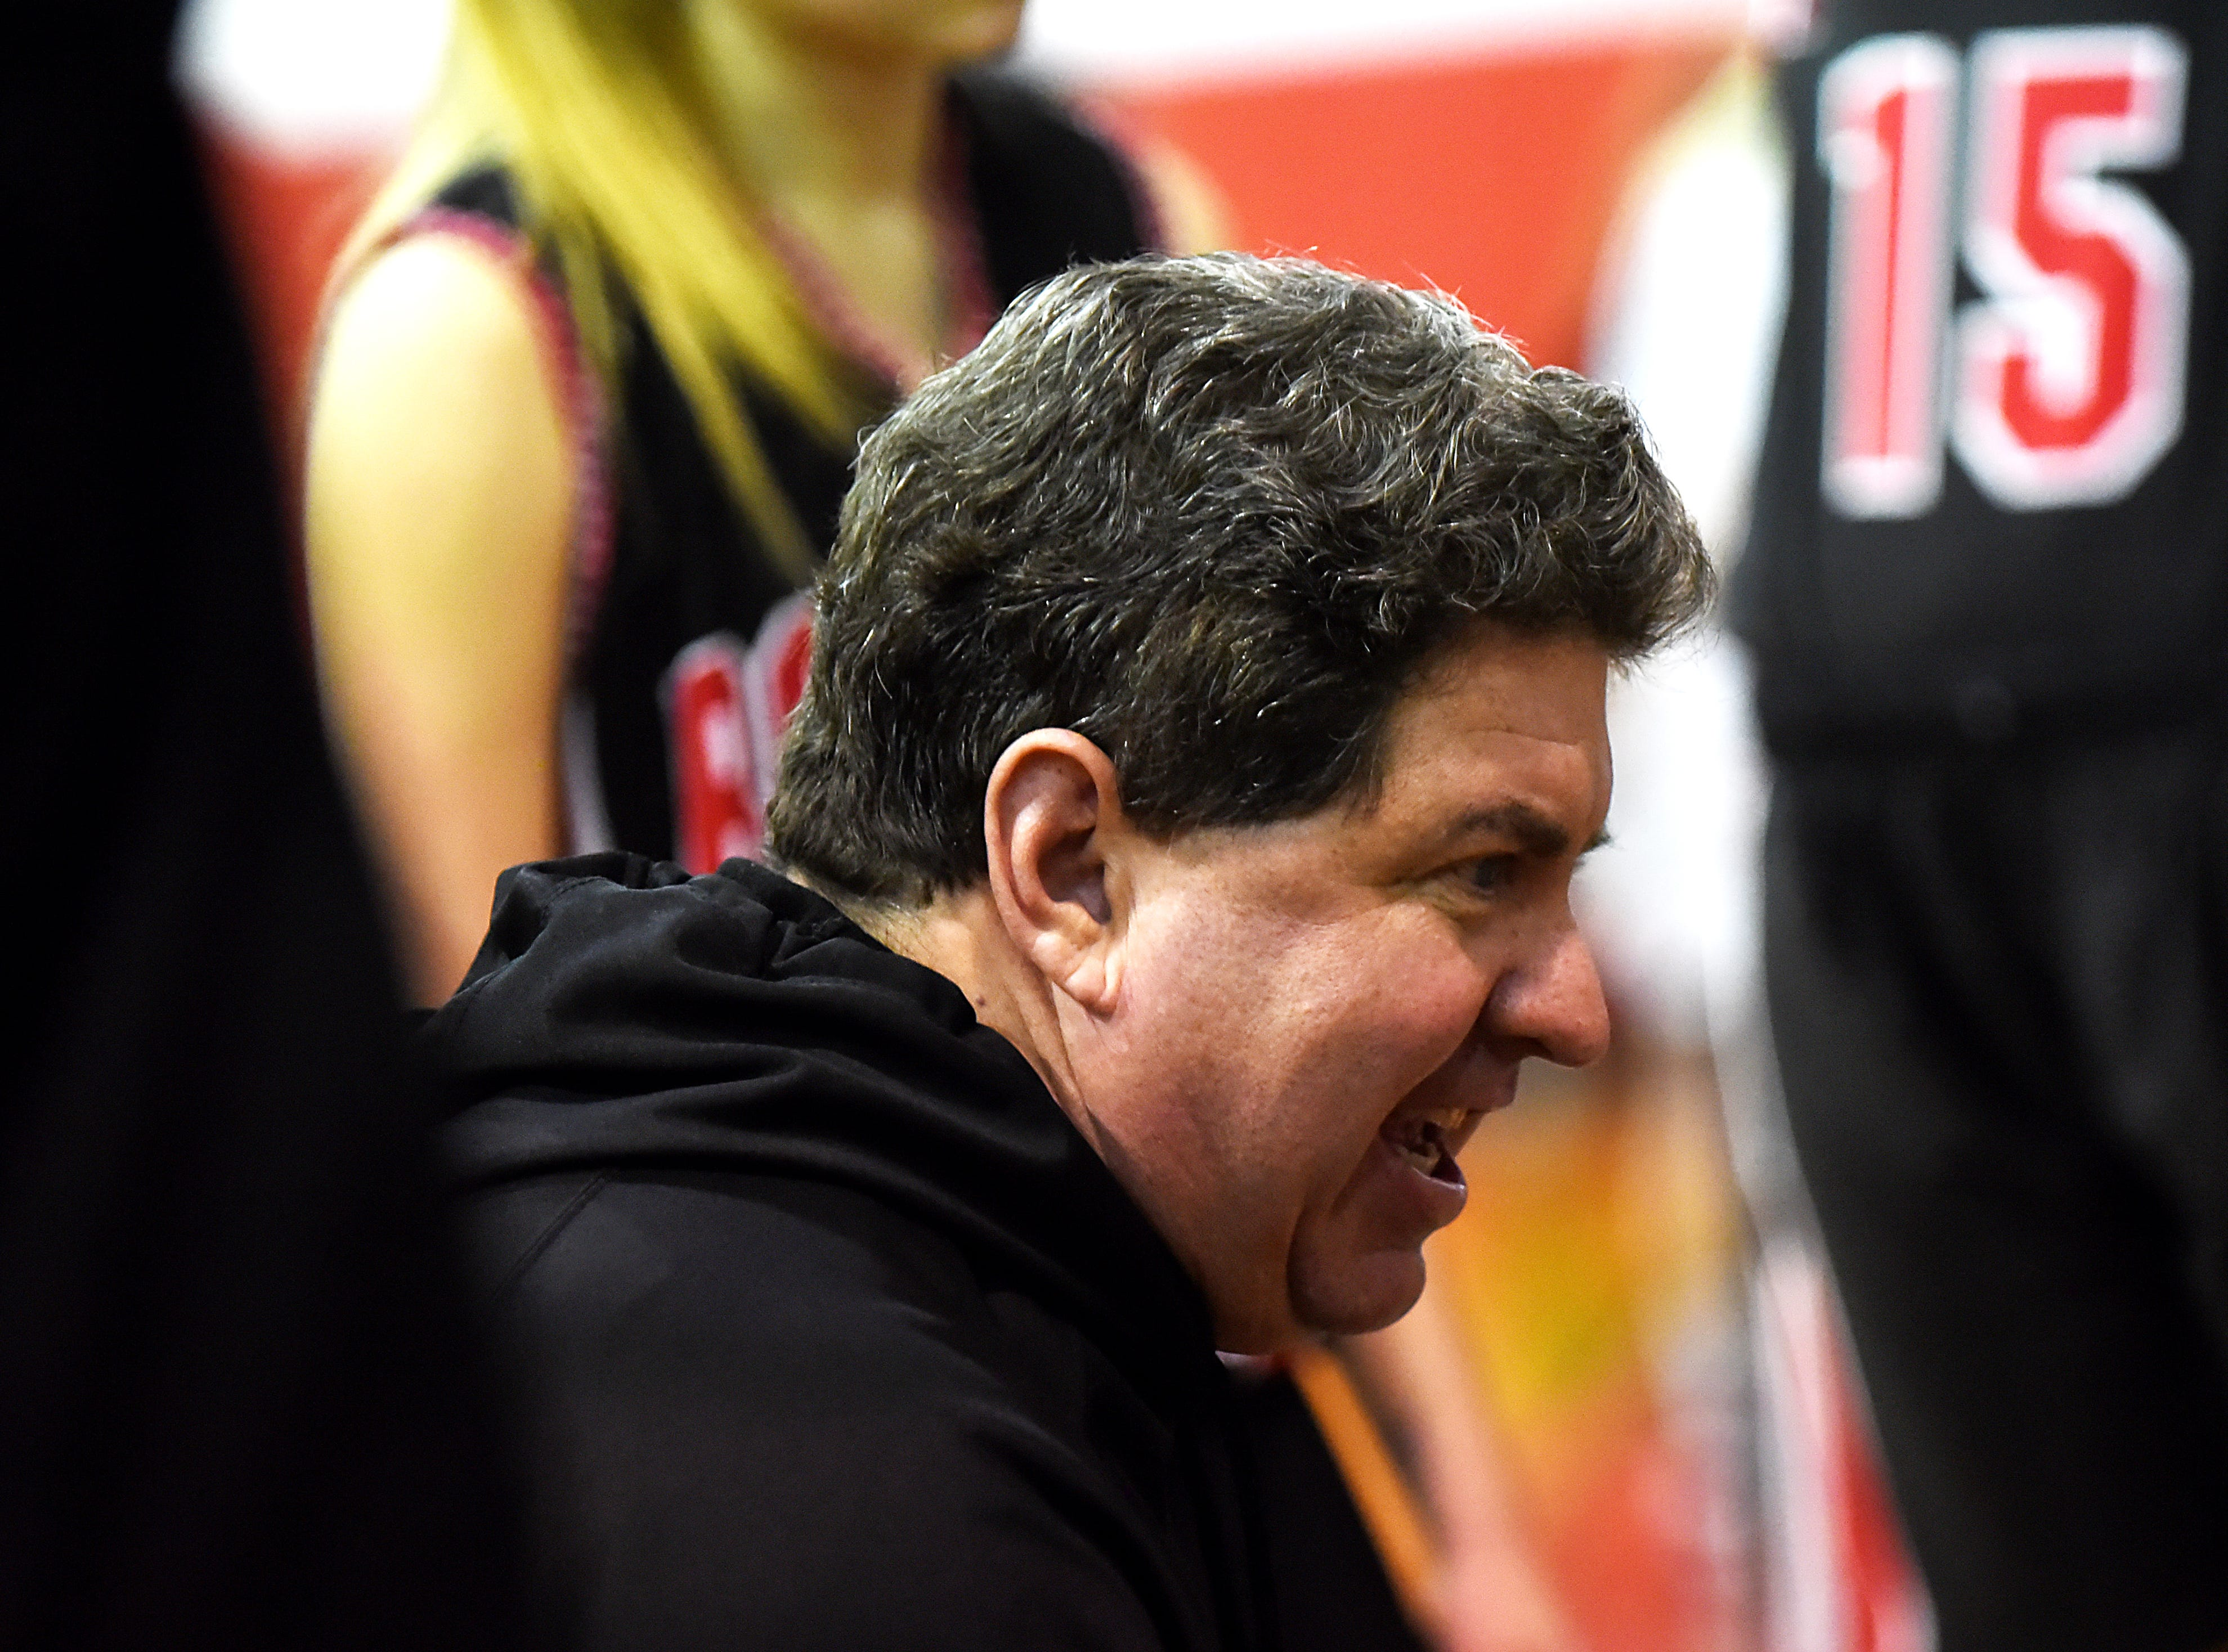 Boonton Vs. Morris Hills girls basketball game at the Morris Hills Holiday Tournament in Rockaway on Friday December 28, 2018. Boonton coach Mike Carlin talks with the team.